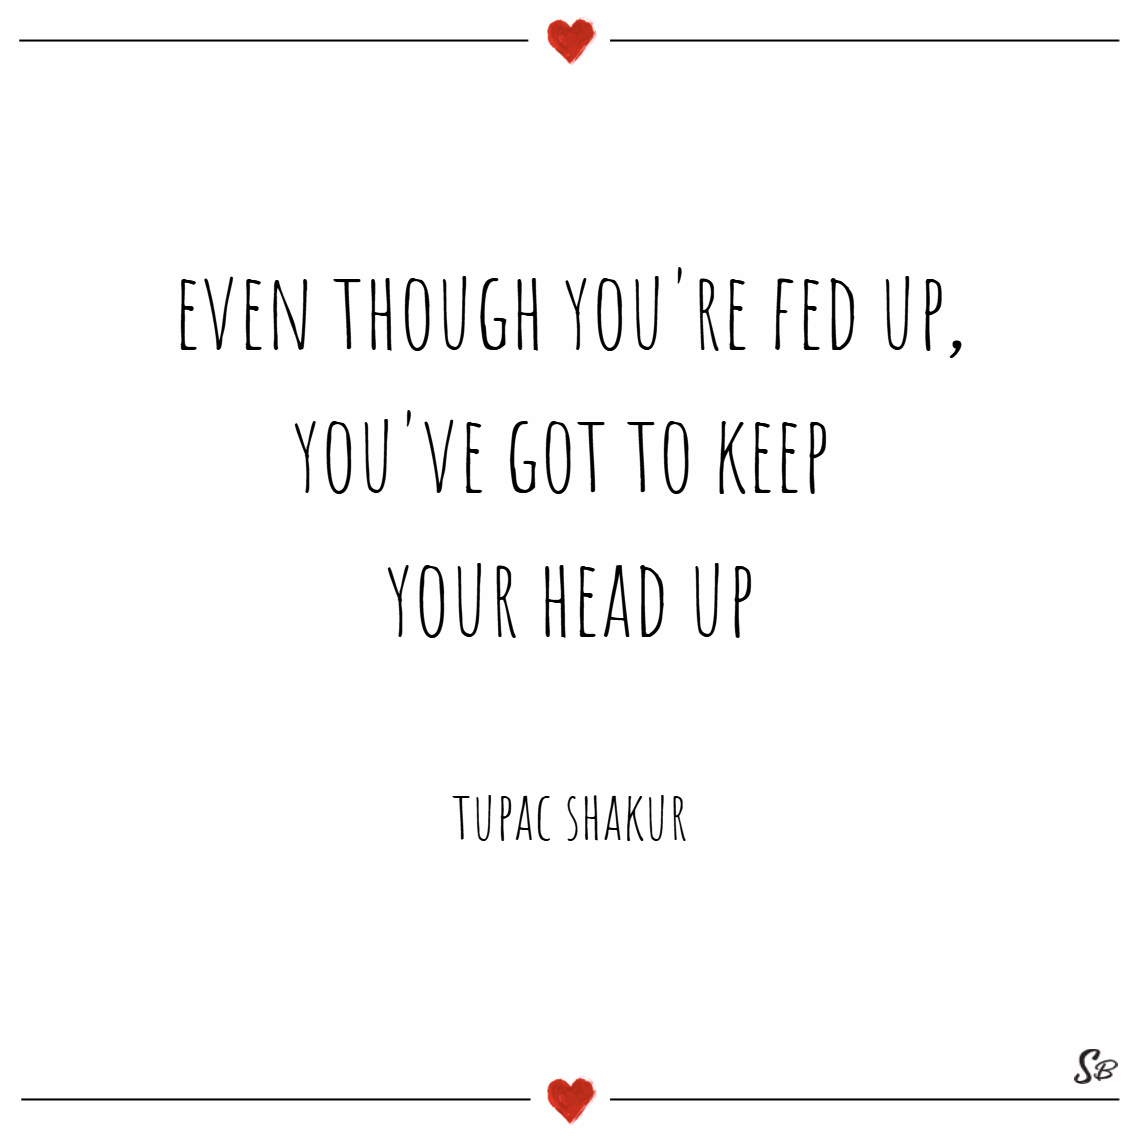 Even though you're fed up, you've got to keep your head up. – tupac shakur